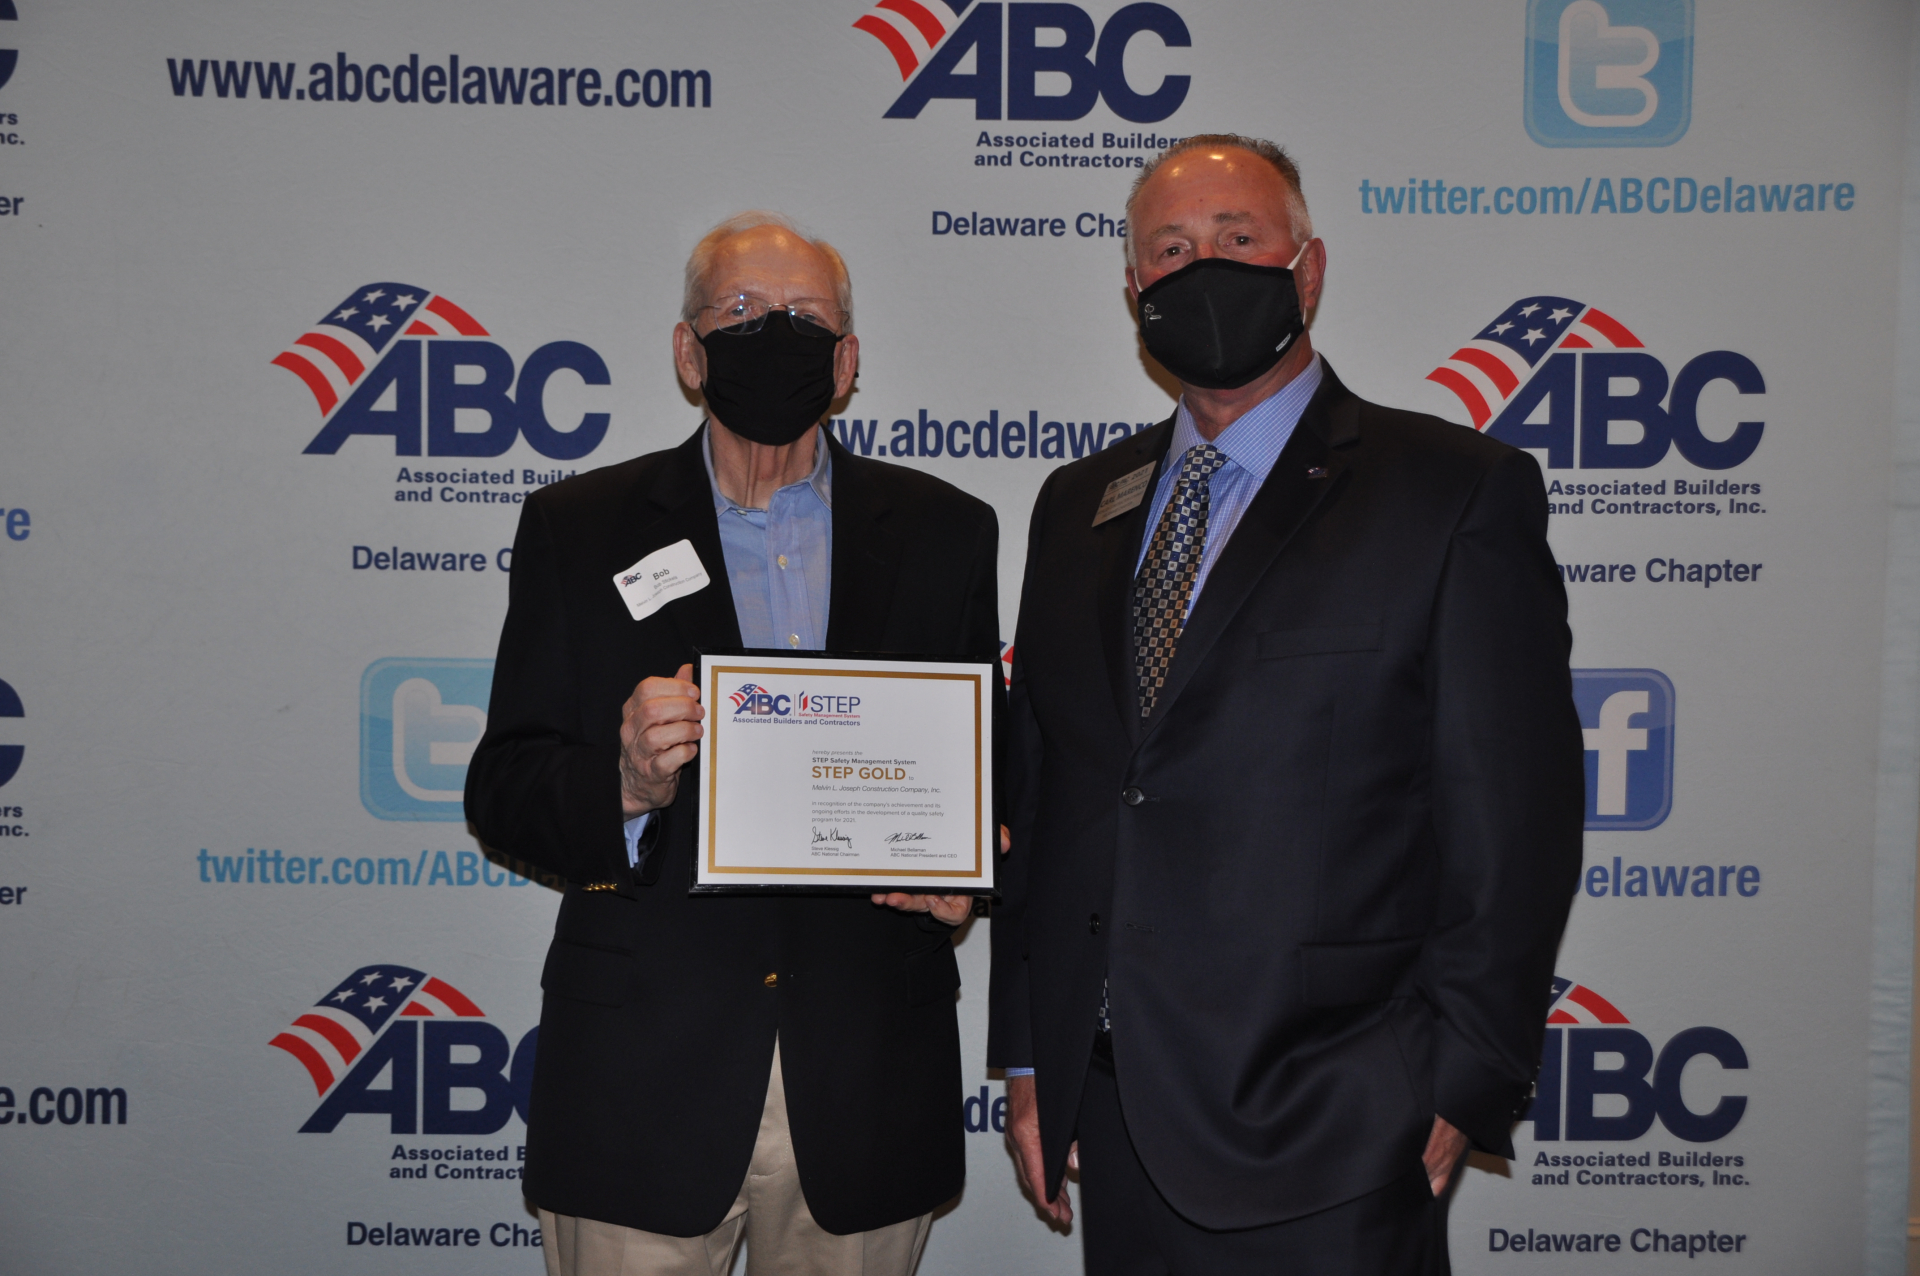 Gold STEP Award from the Associated Builders and Contractors